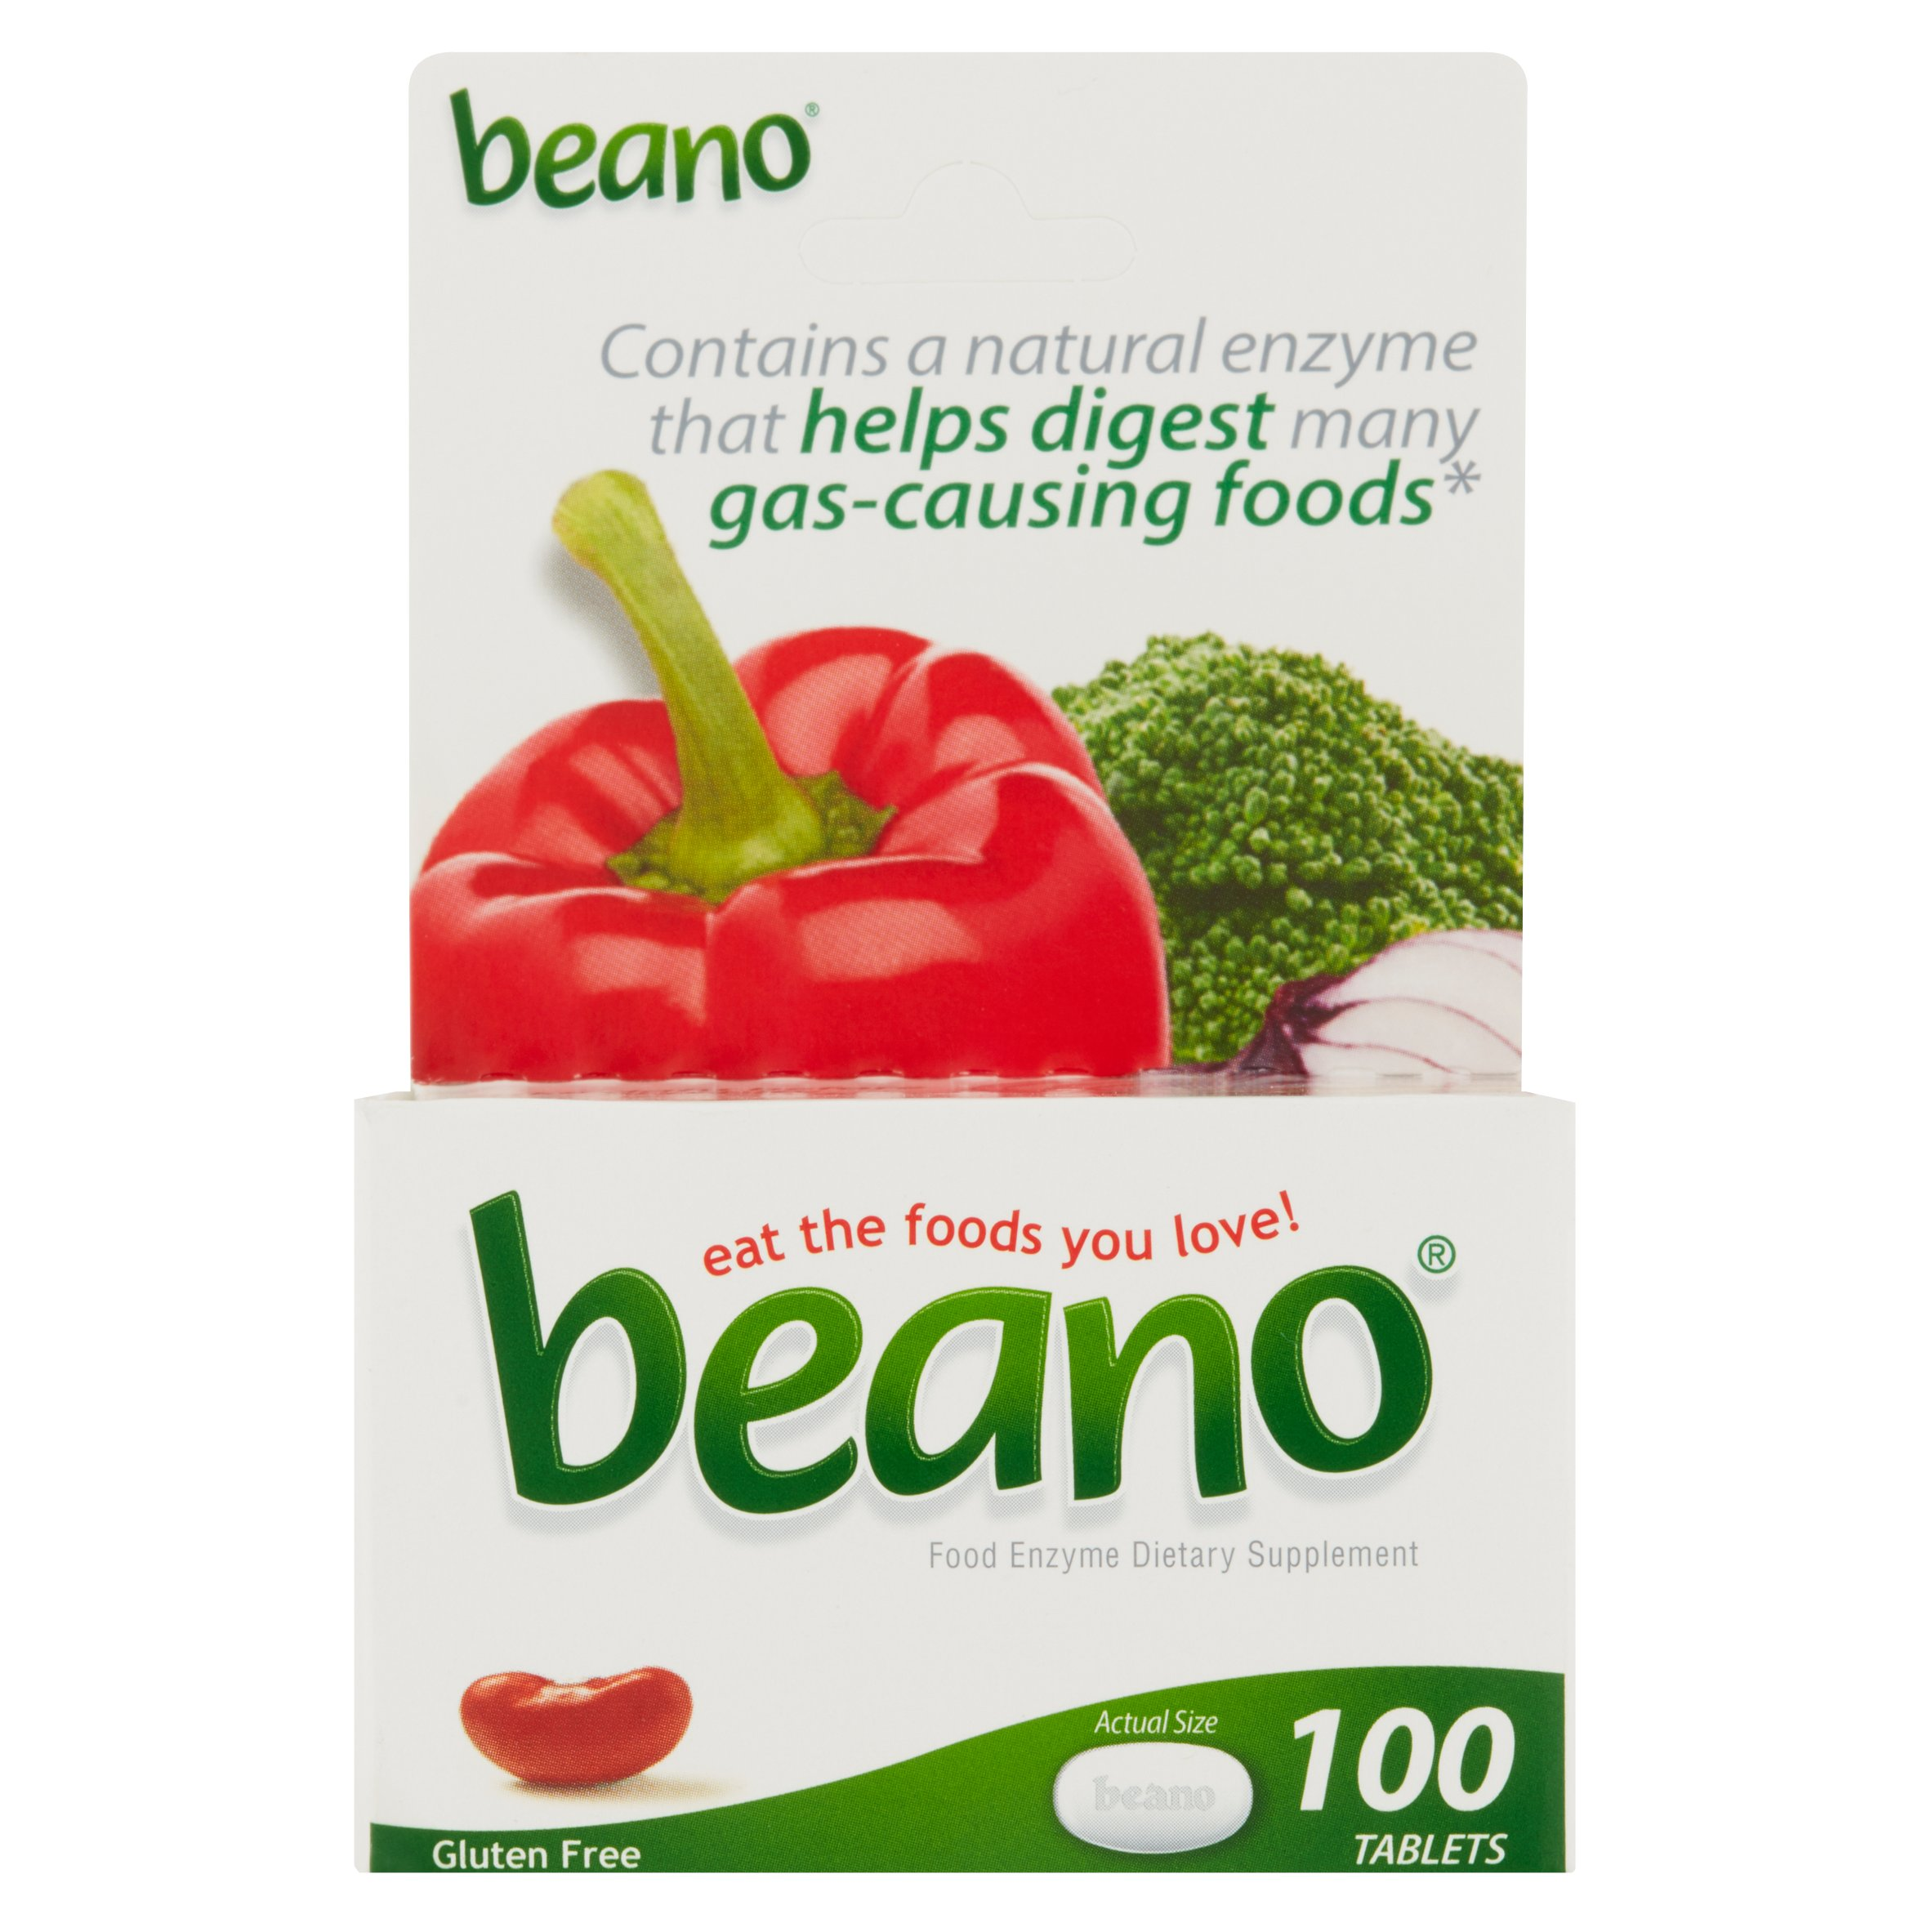 Beano Food Enzyme Dietary Supplement 100 Tablets